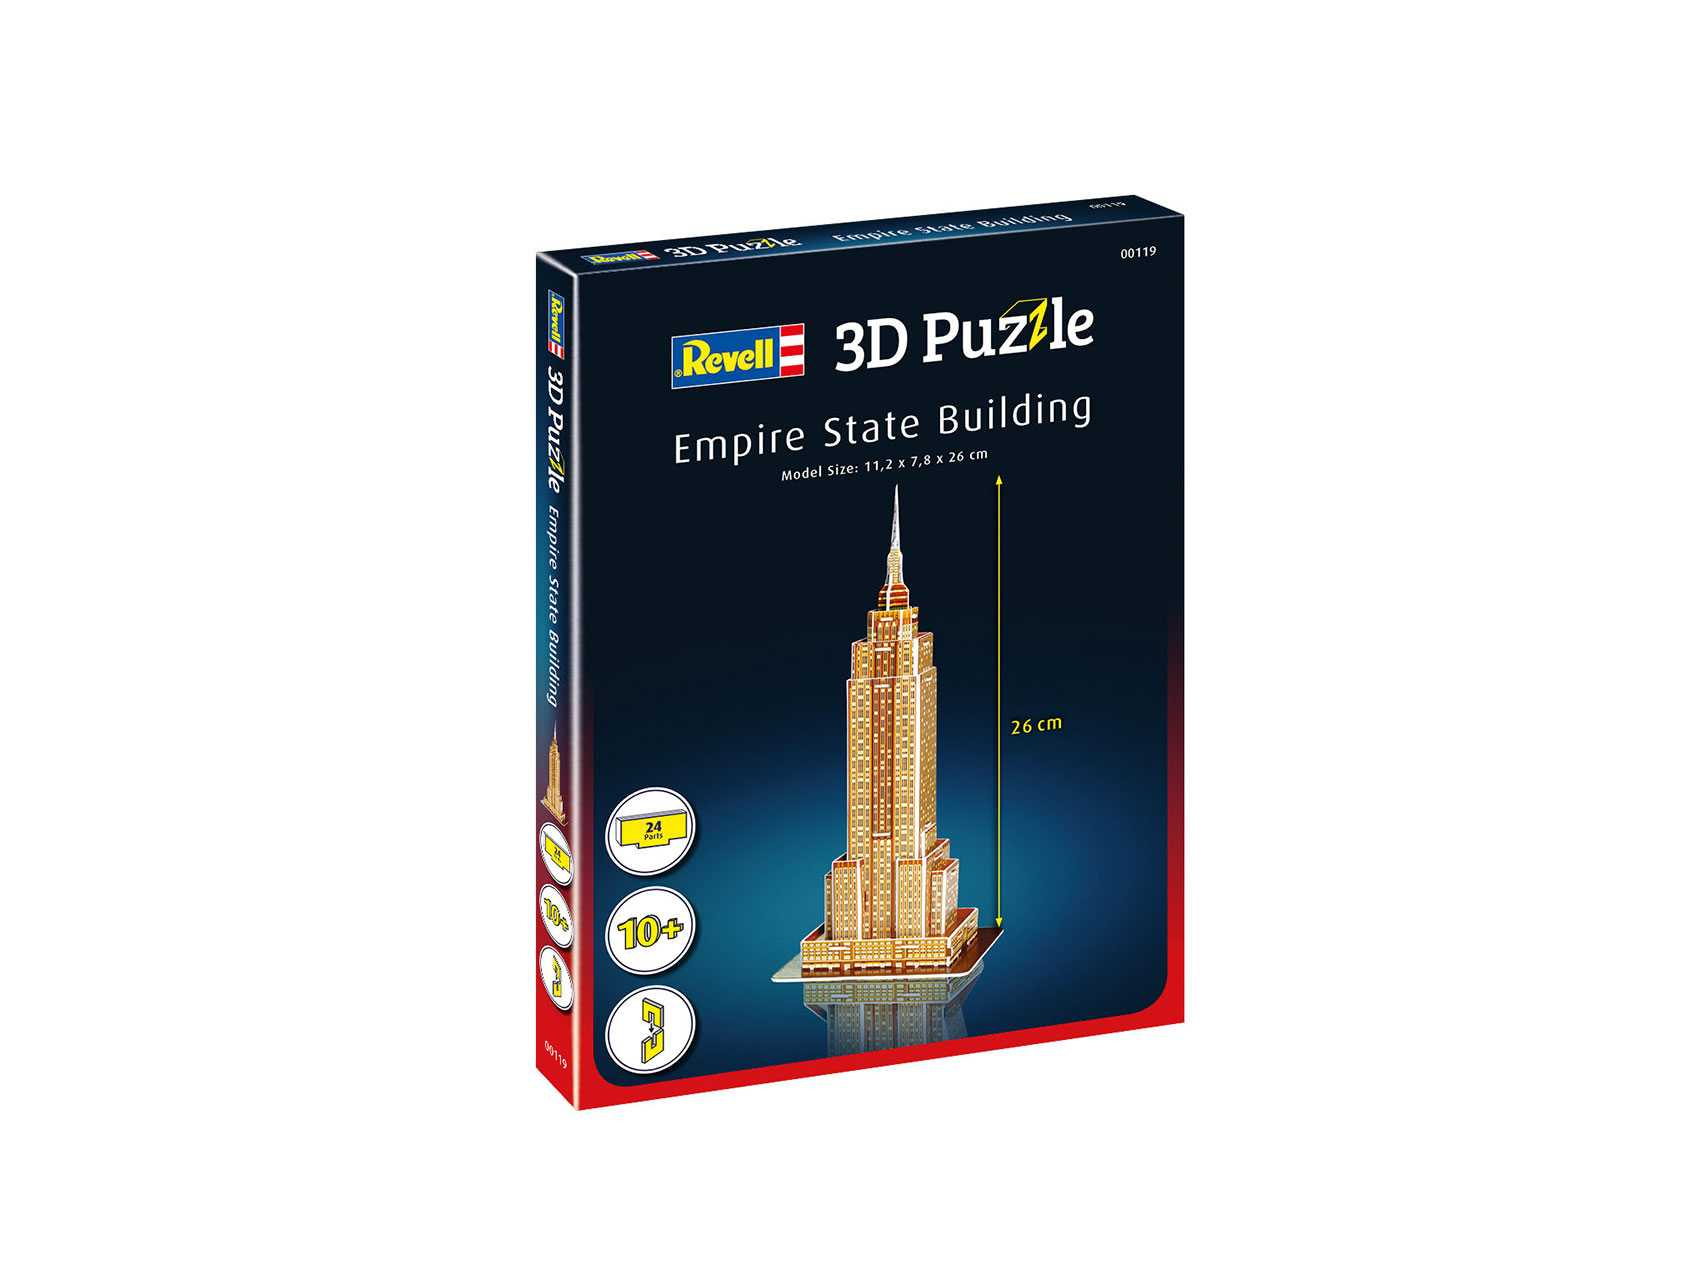 3D Puzzle Revell – Empire State Building